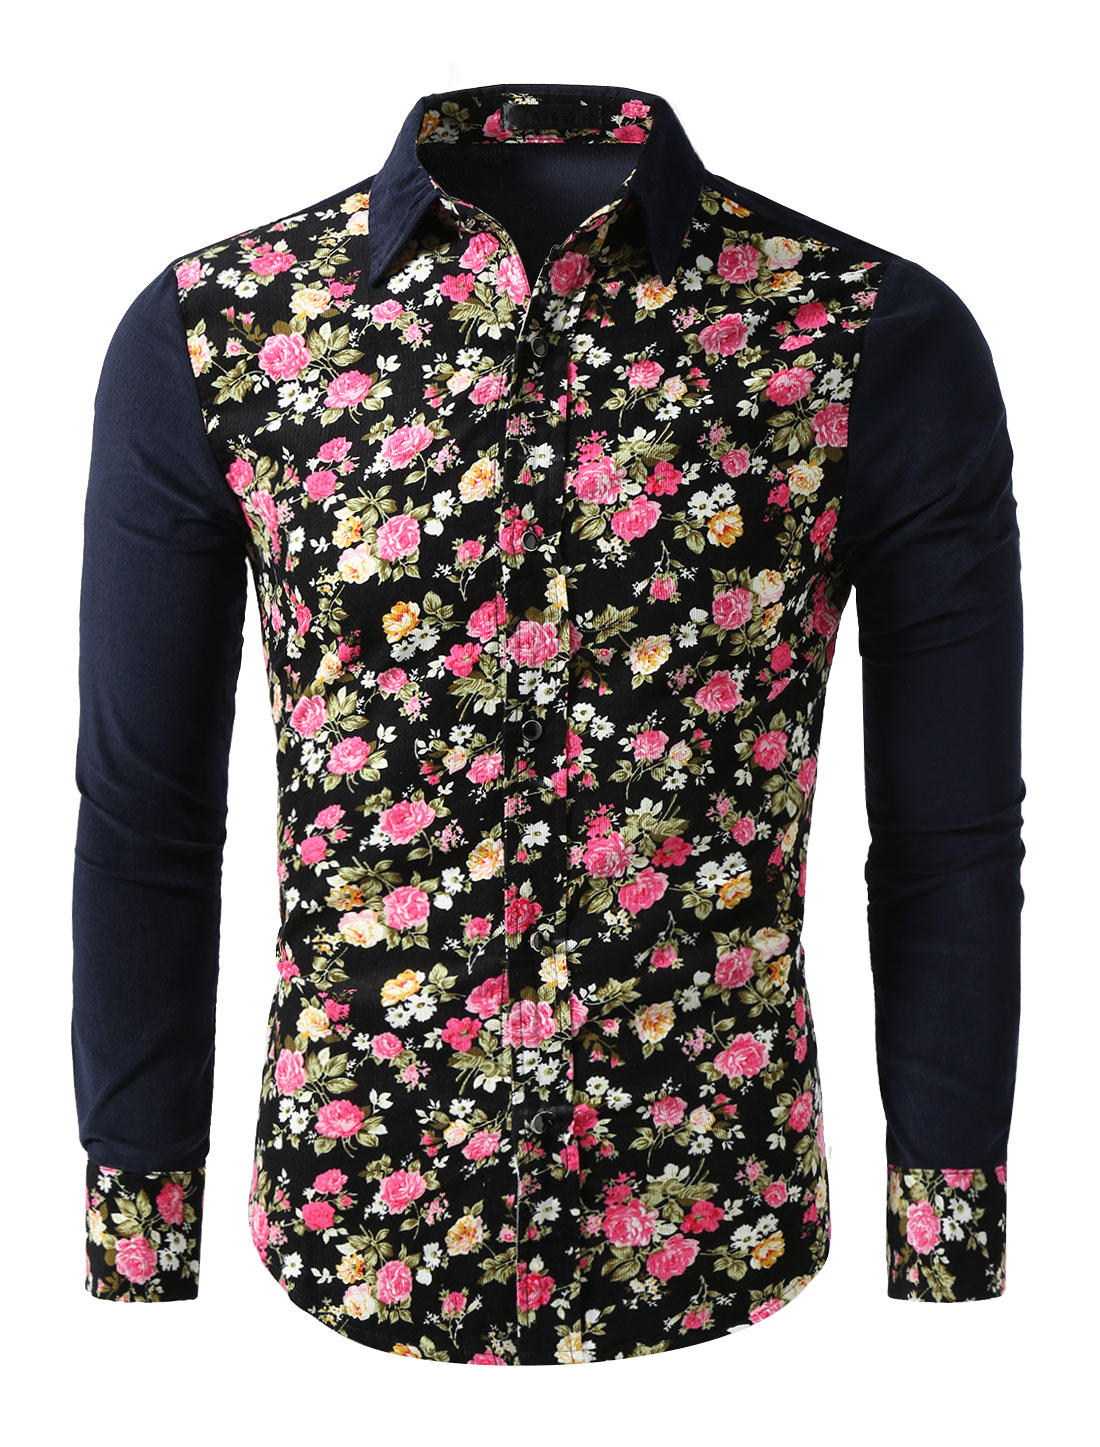 Men Floral Print Point Collar Long Sleeves Button Down Corduroy Shirts Navy Blue M